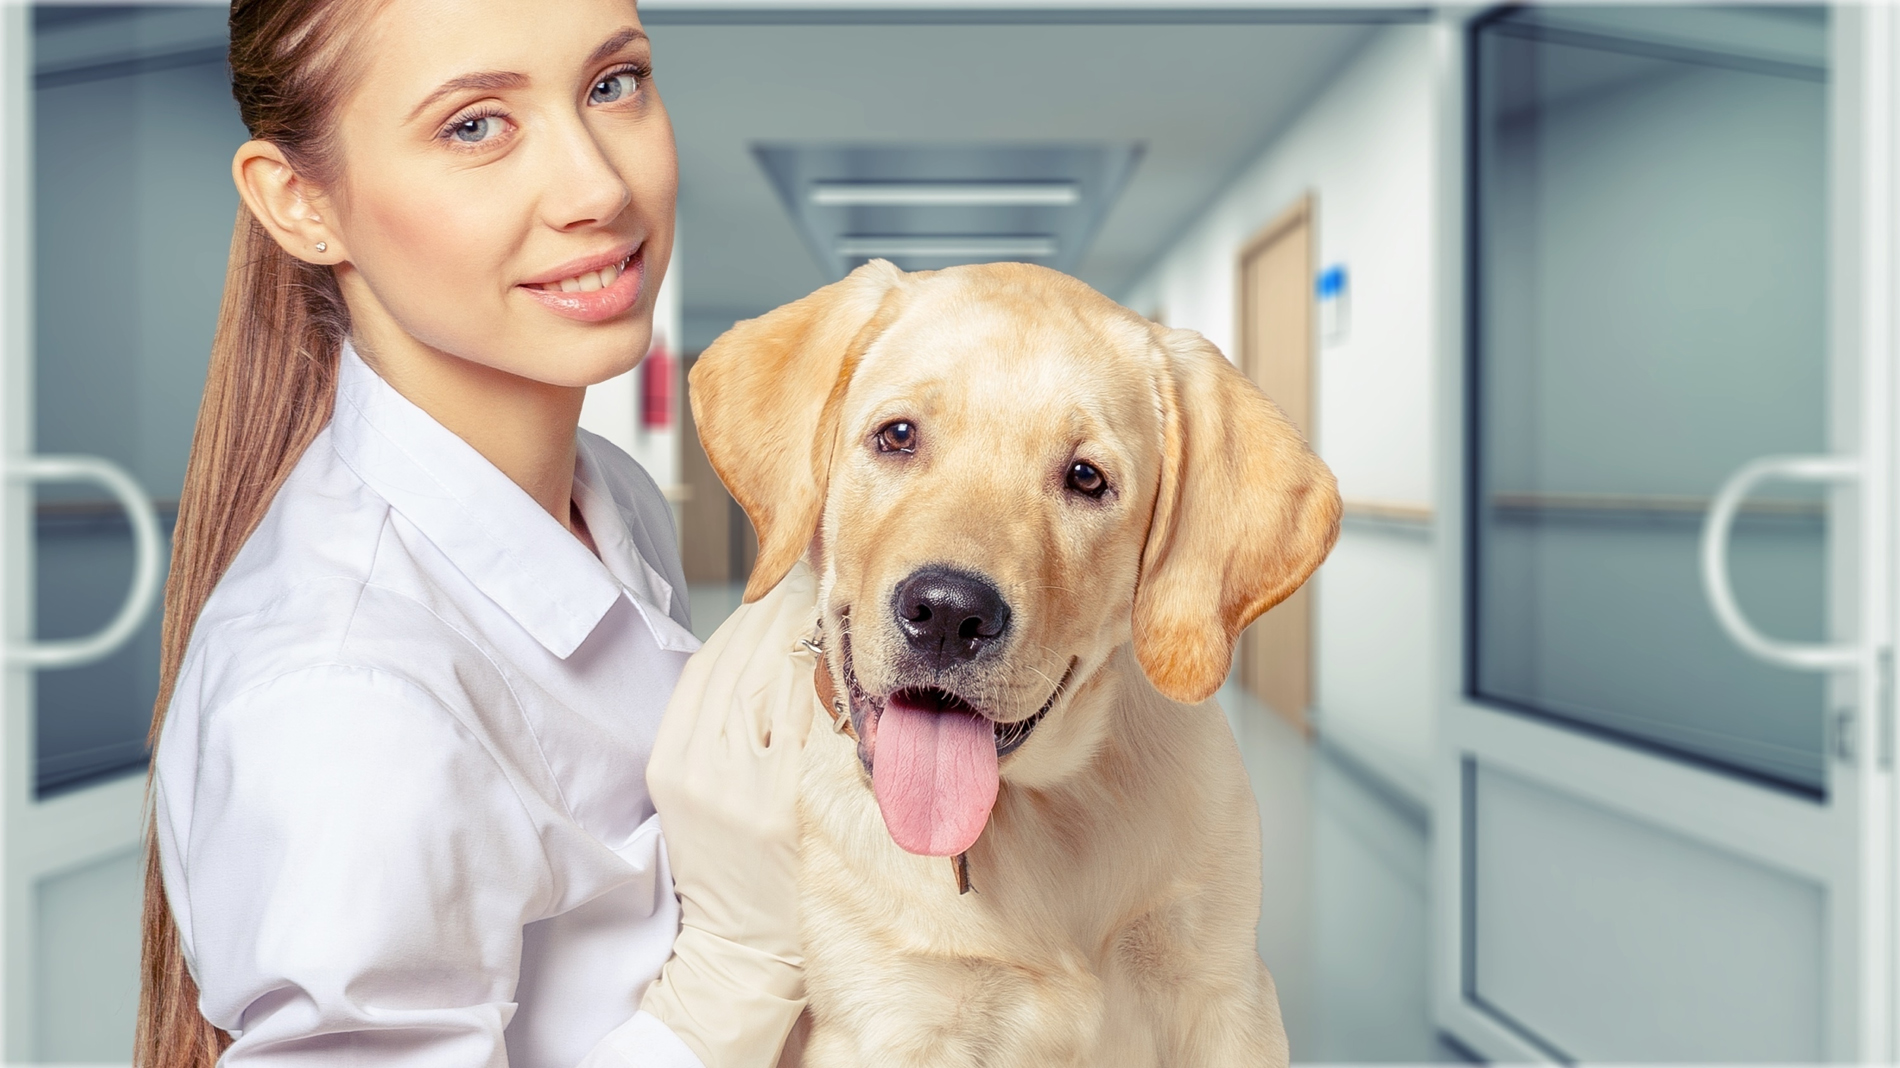 Hands holding the dog's veterinarian beauty 52753